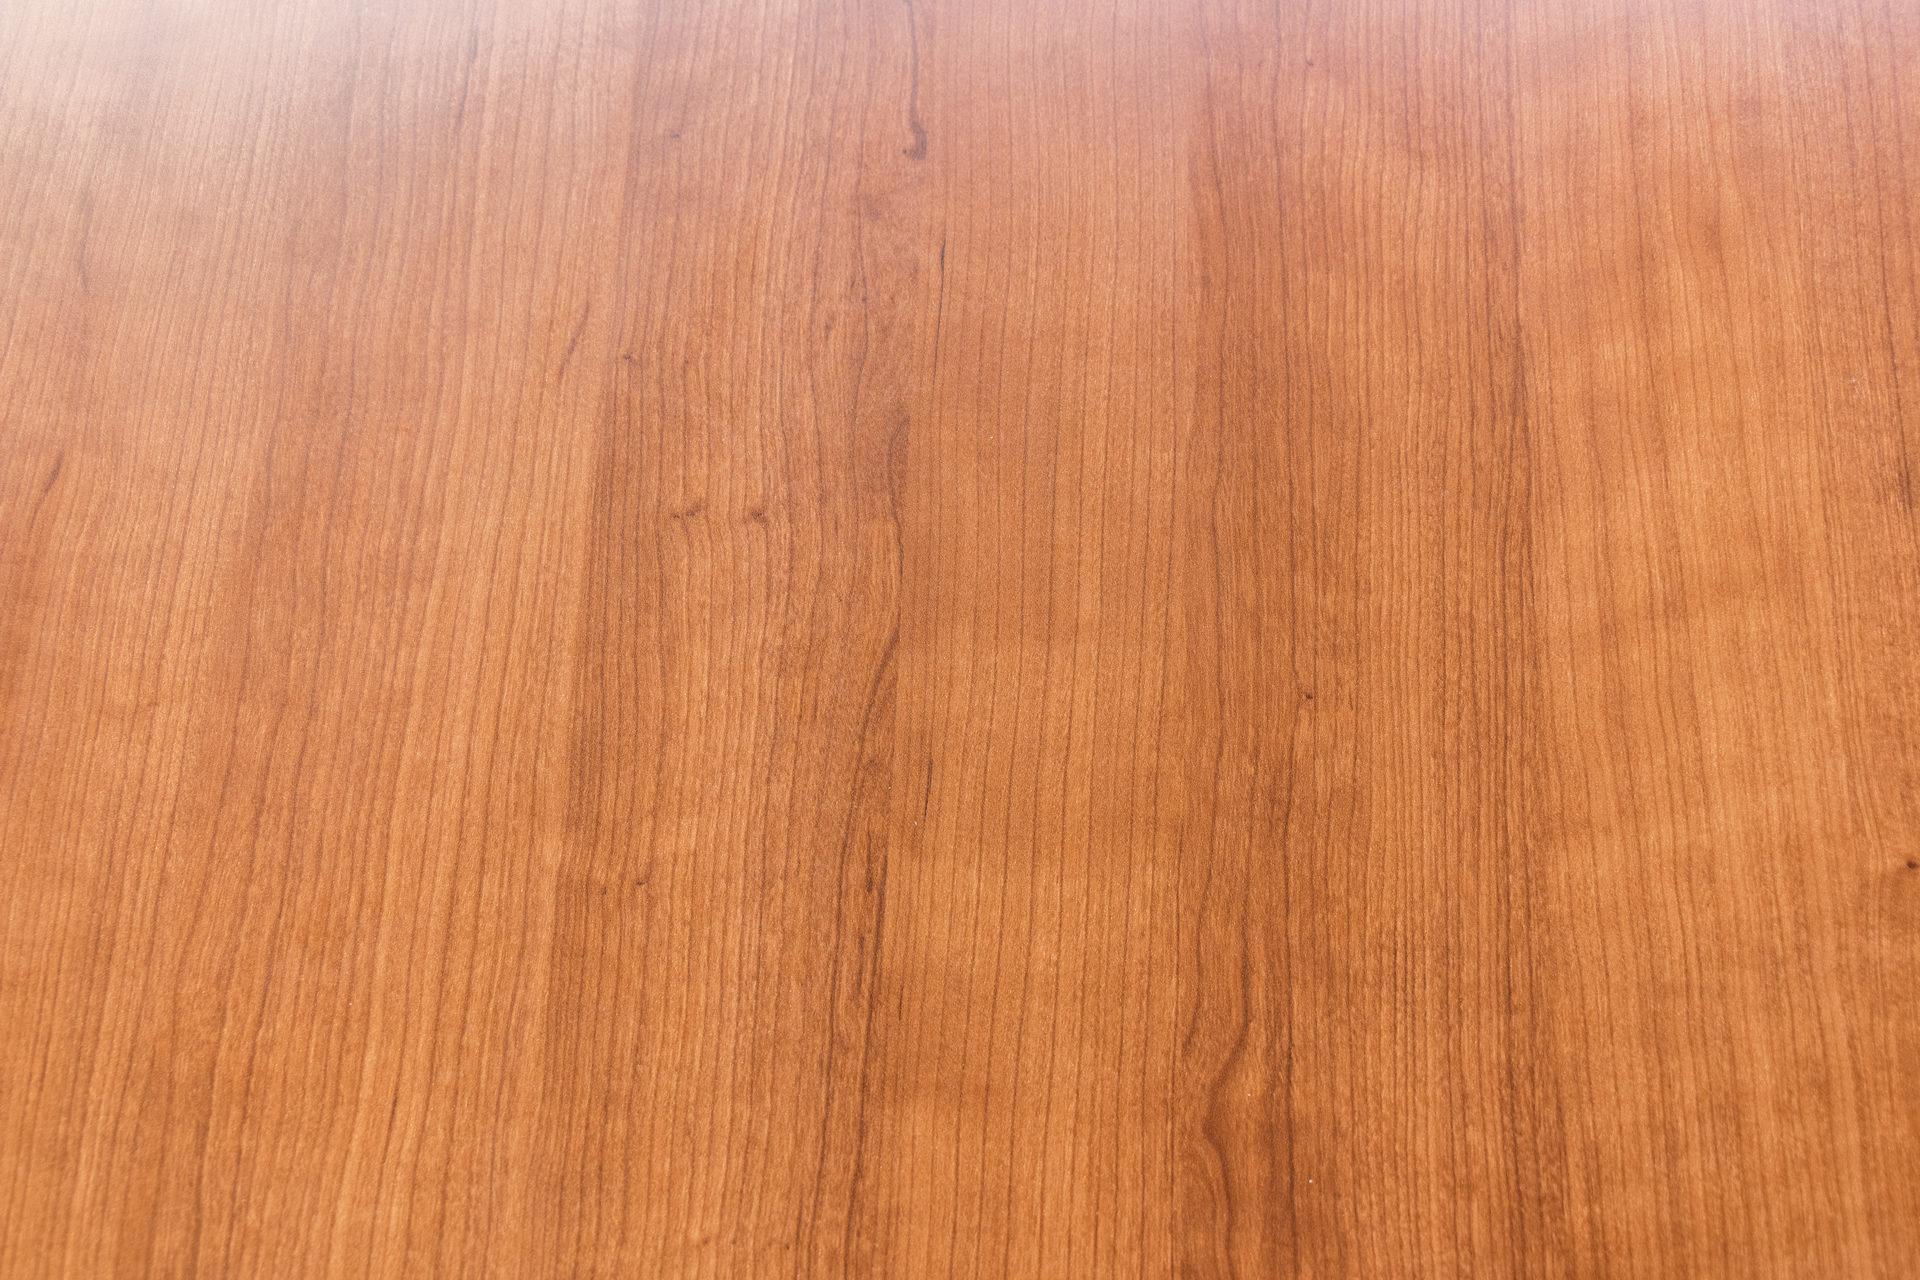 peartreeofficefurniture_peartreeofficefurniture_peartreeofficefurniture_nienkamper-vox-8-x-3-5-cherry-laminate-tapered-edge-conference-table-7.jpg